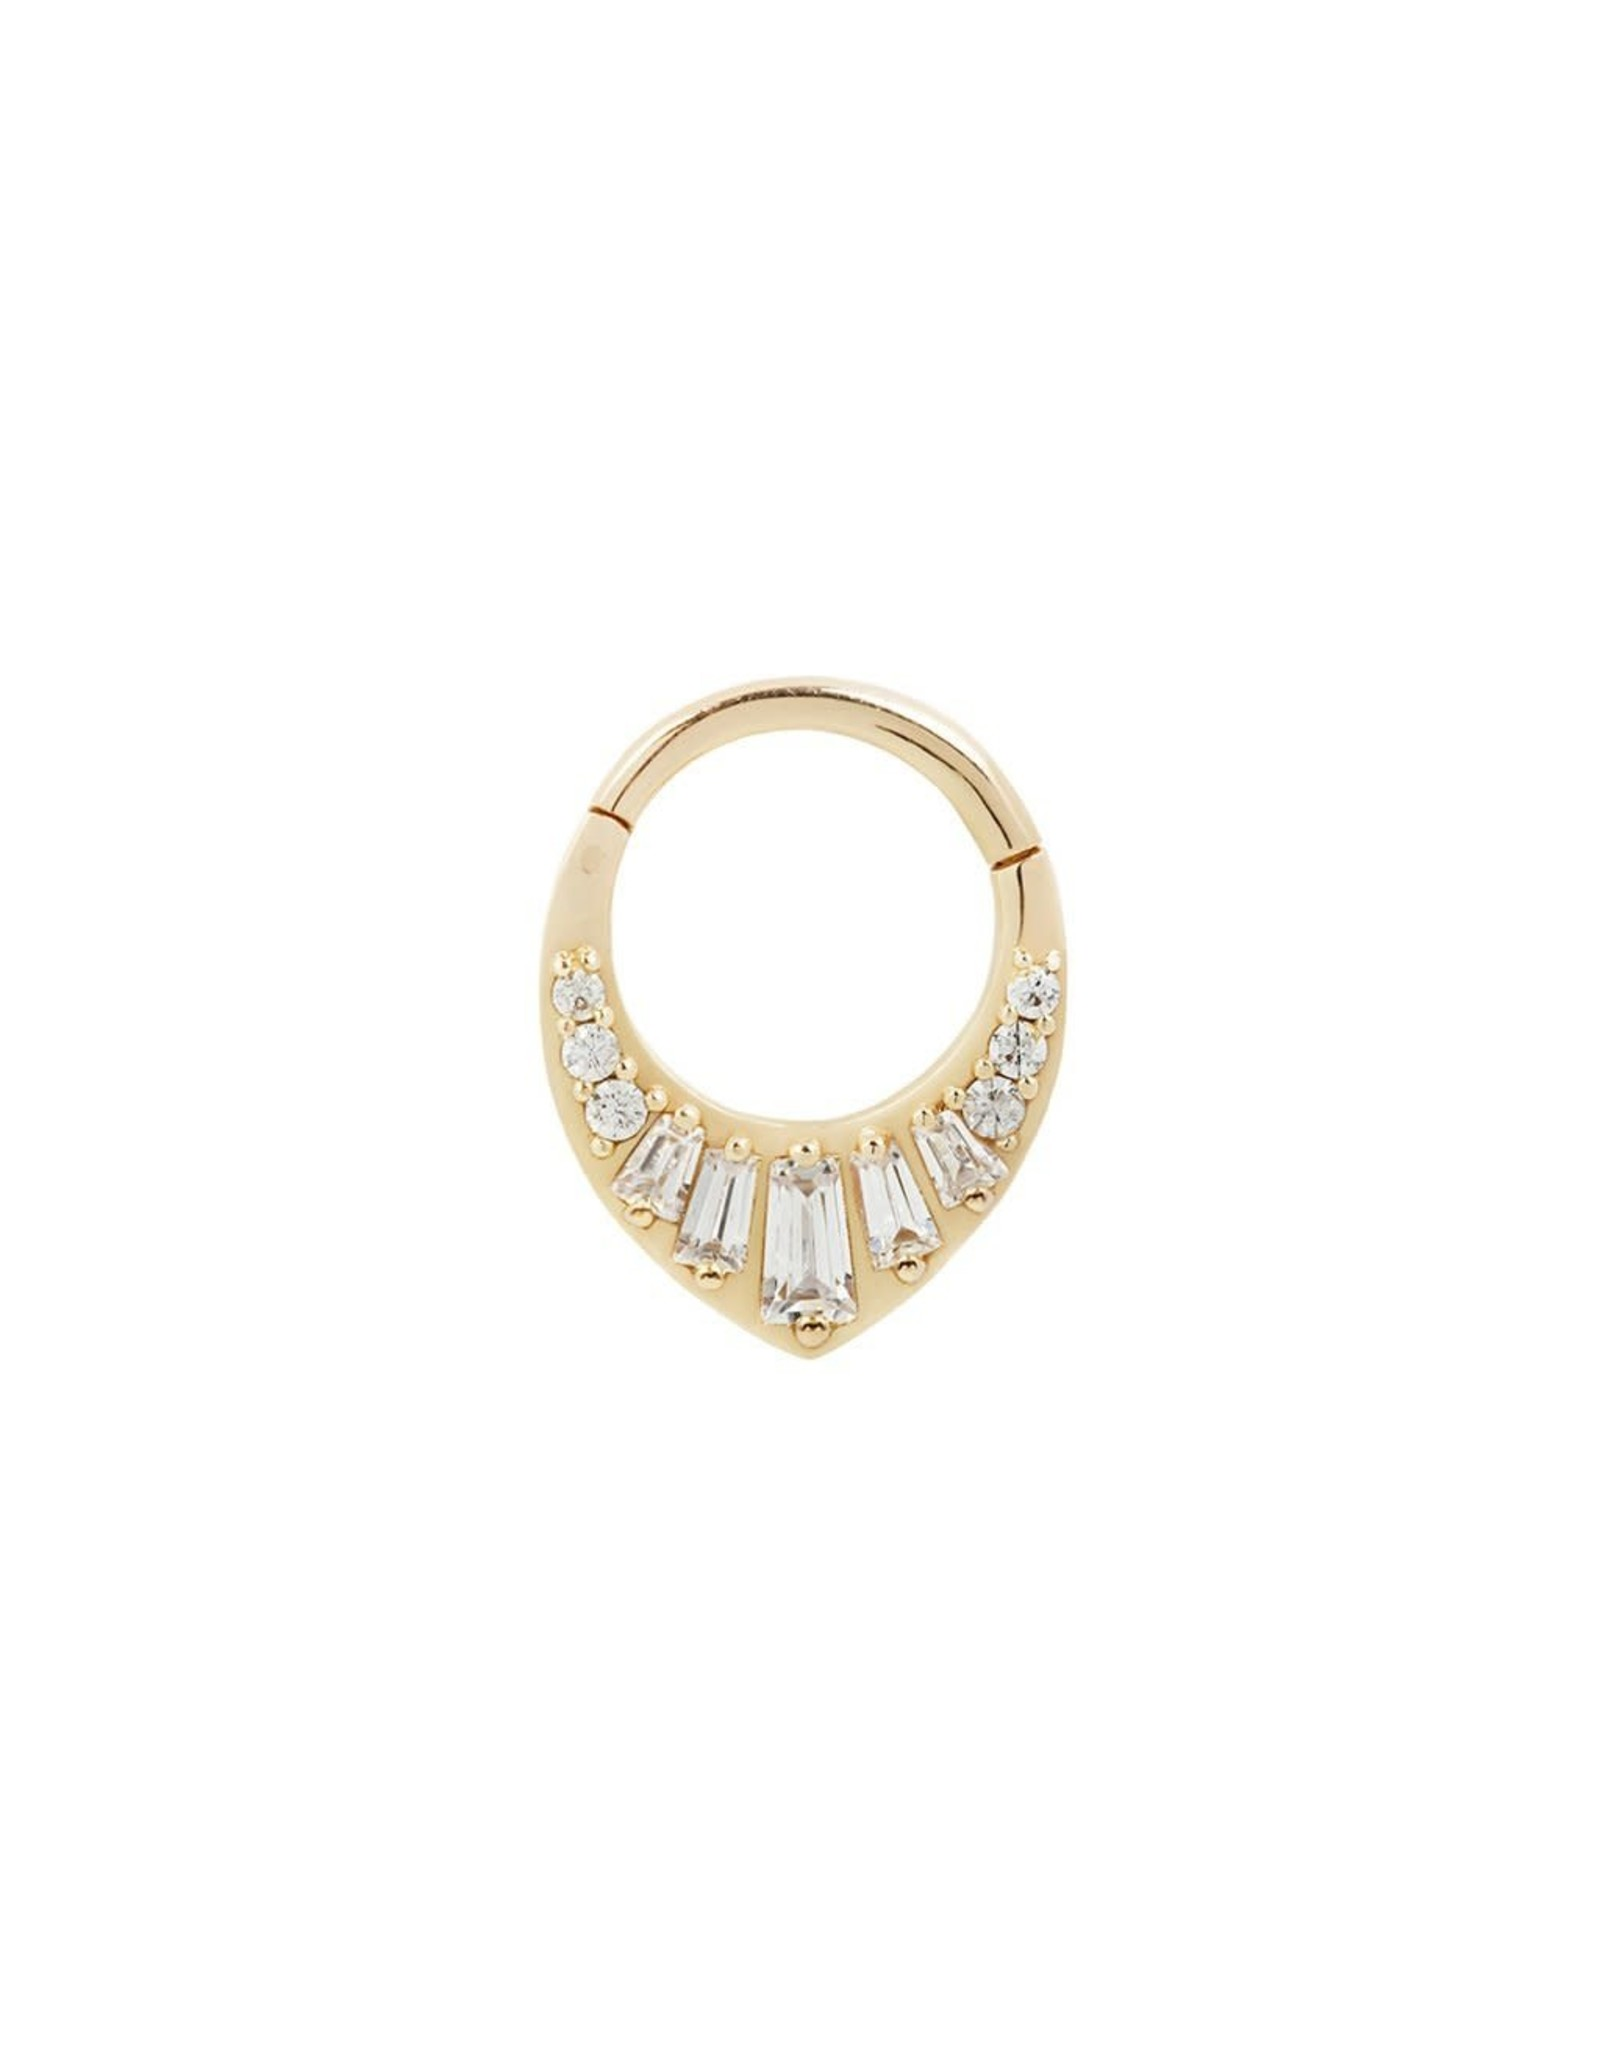 """Buddha Jewelry Organics Buddha Jewelry Organics """"Prism"""" clicker with brilliant and baguette CZ's"""